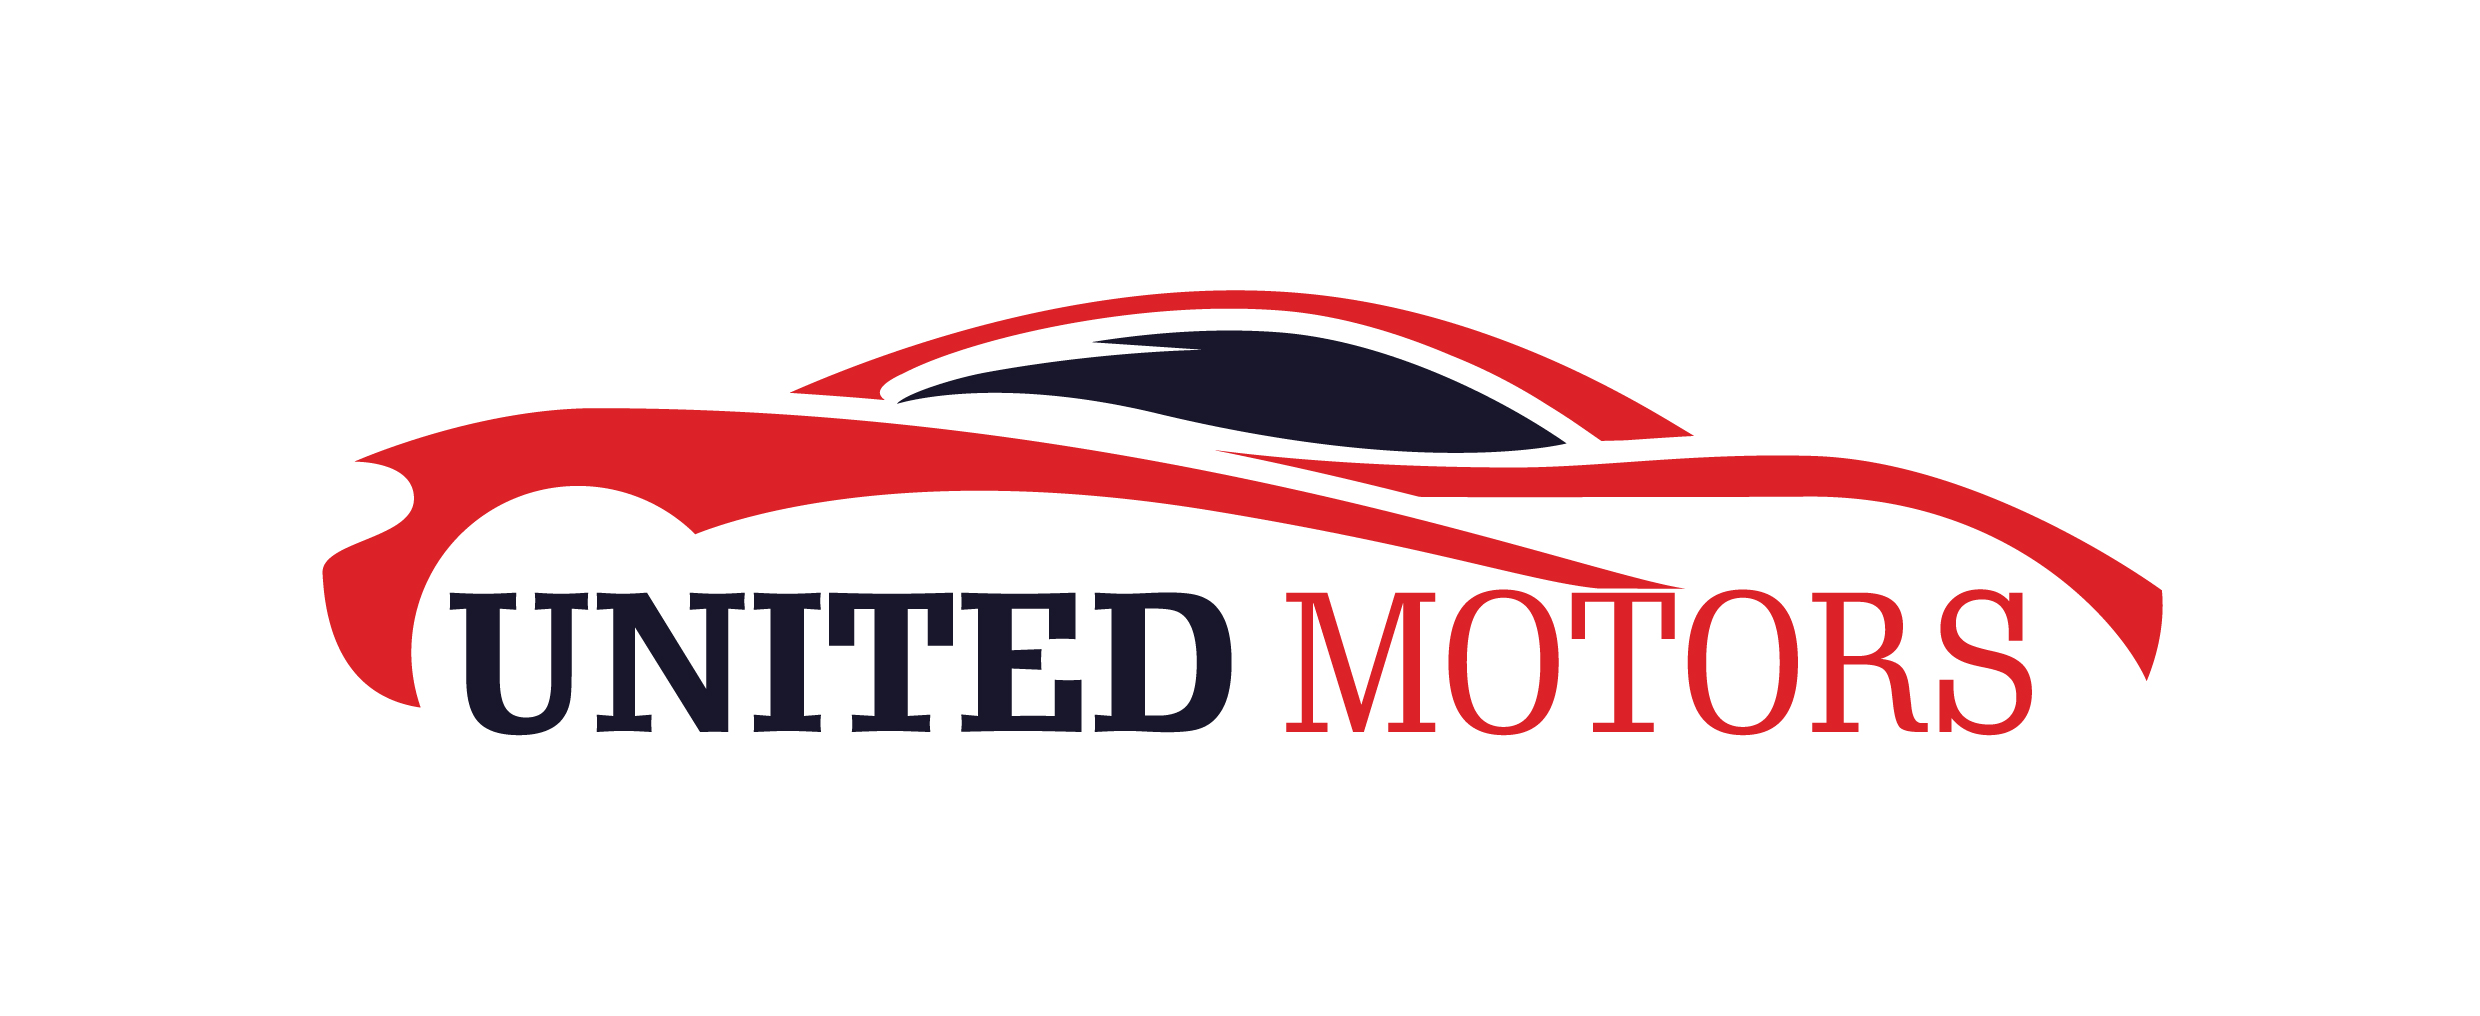 How To Get A Dealers License >> United Motors Used Car Dealer in Lahore | PakWheels